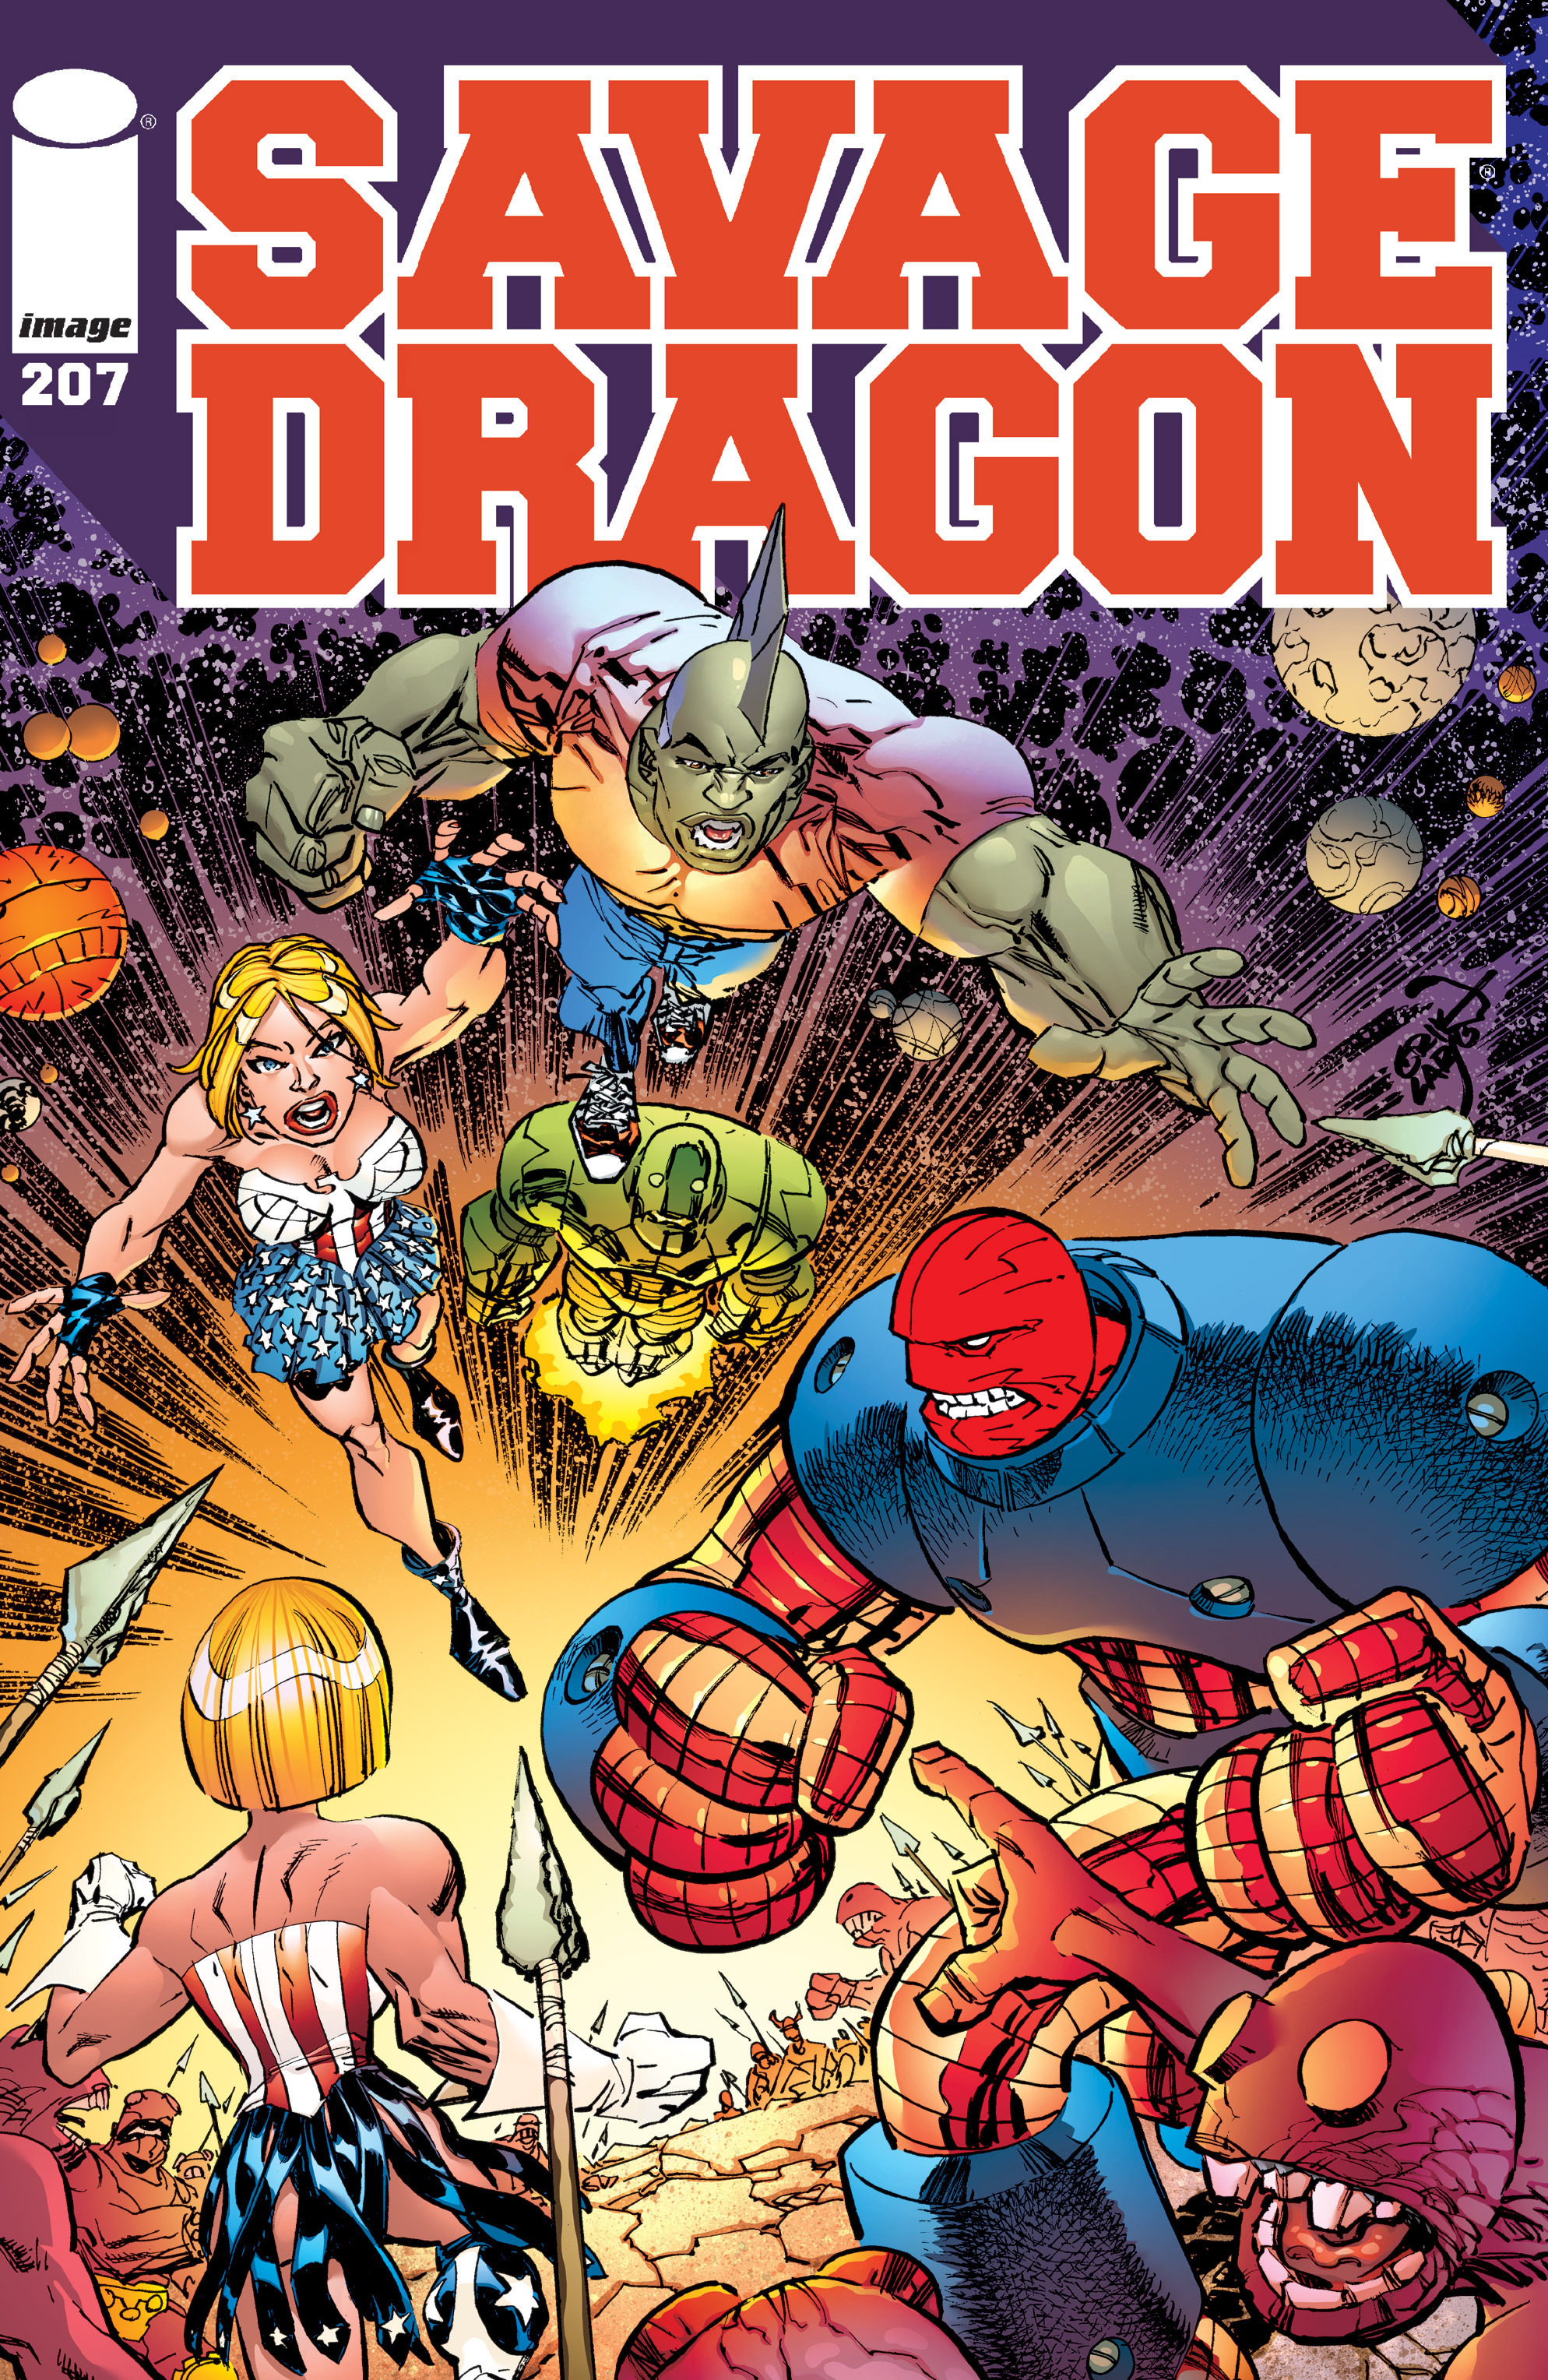 Cover Savage Dragon Vol.2 #207